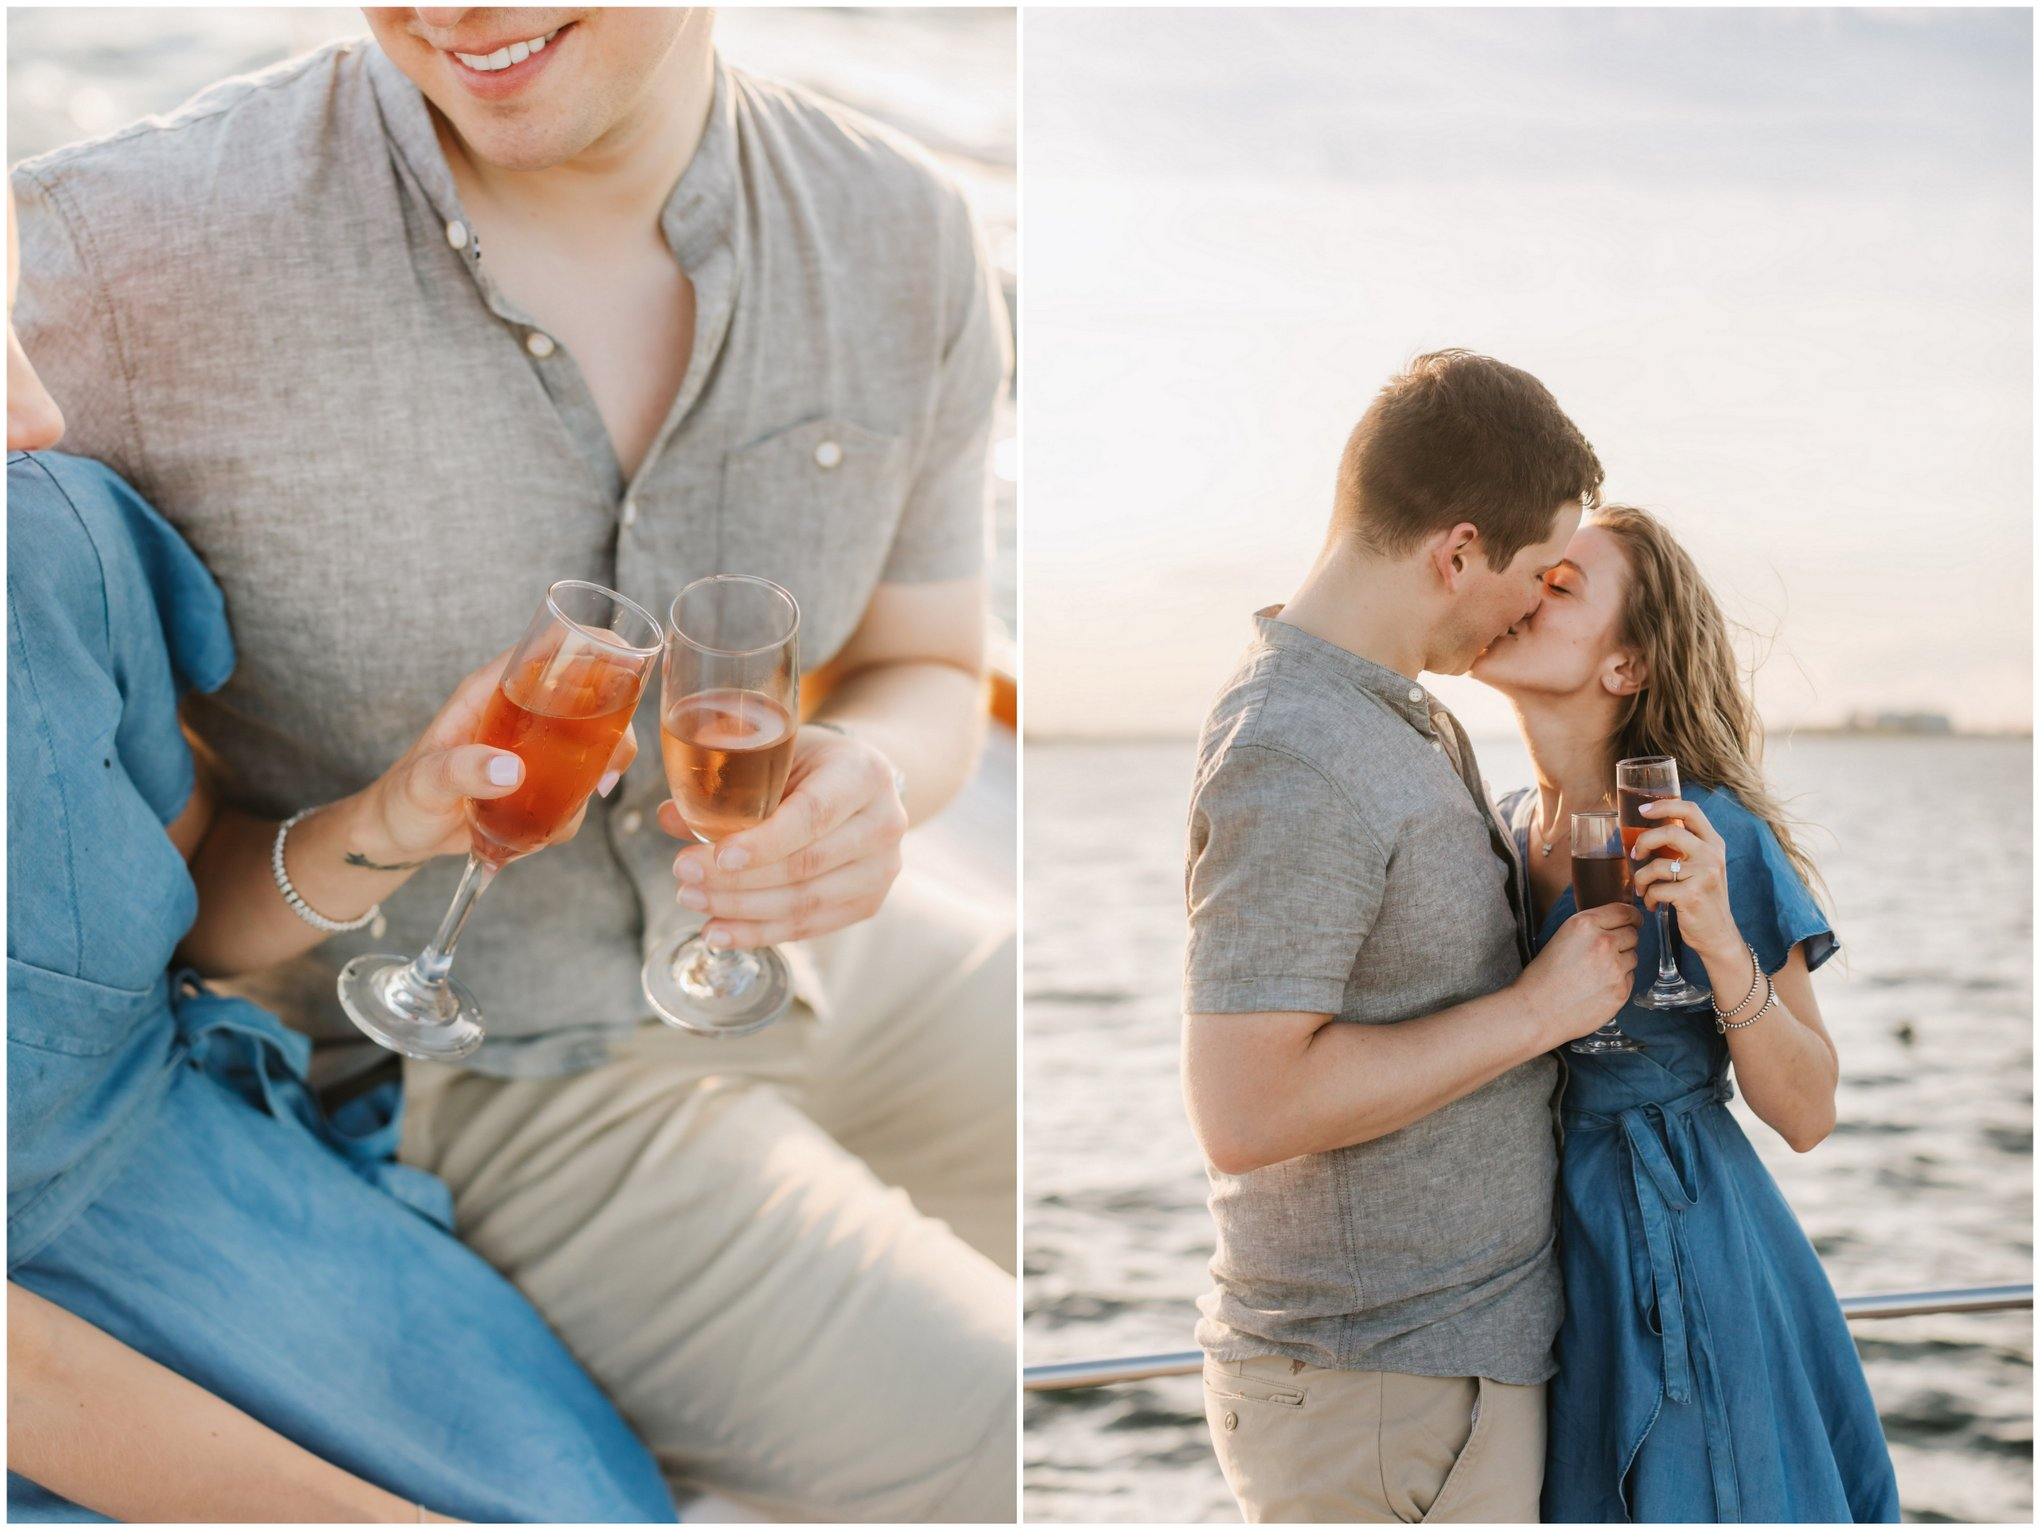 Yacht-Proposal-Boat-Boston-Harbor-Engagement-Beach-Lena-Mirisola-11.JPG